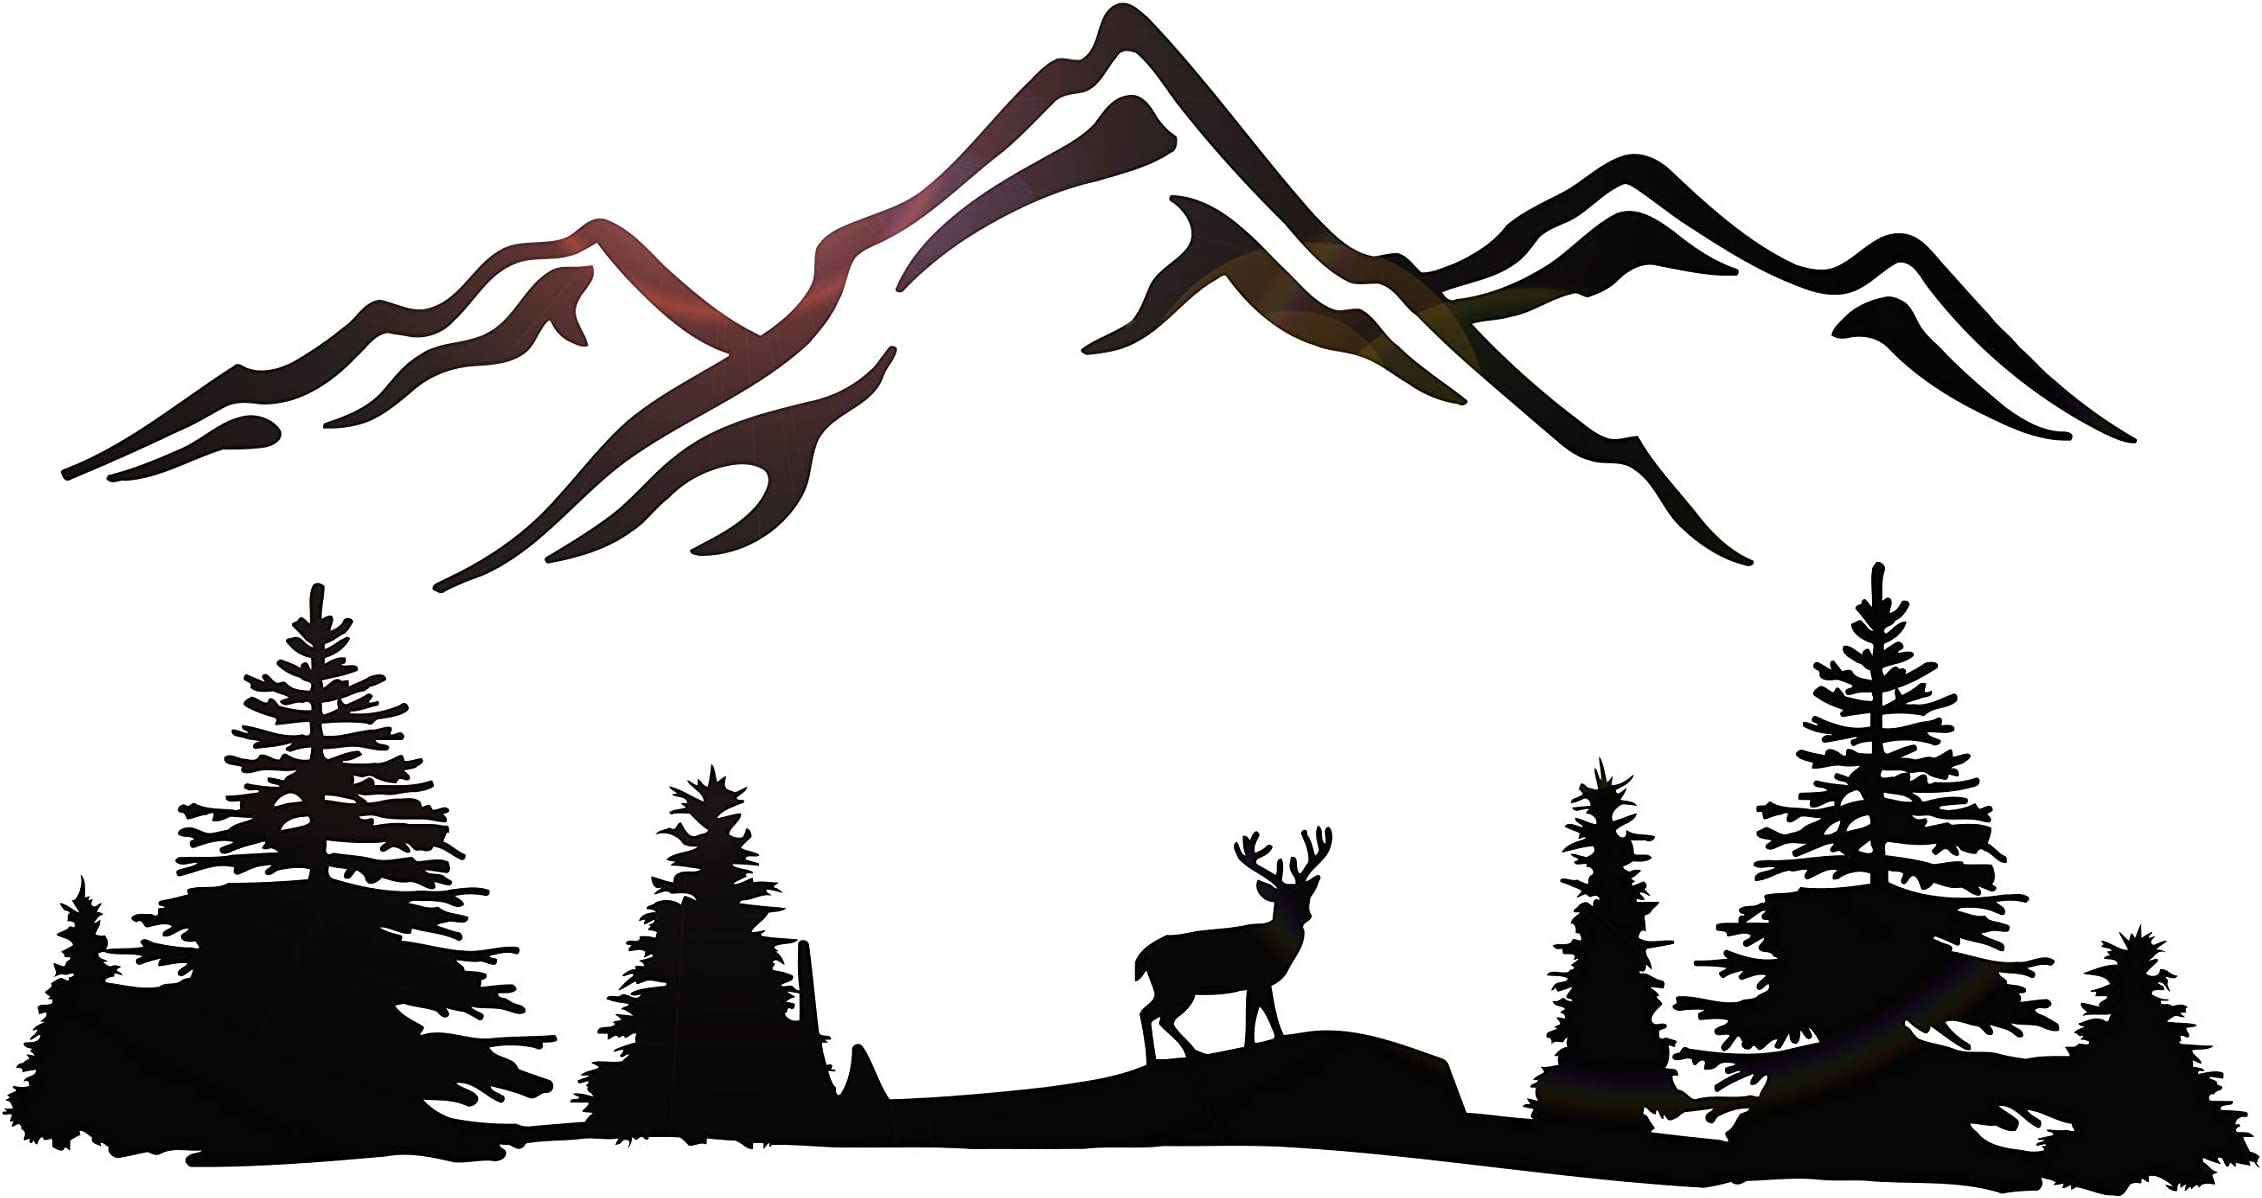 Forest Wall Decal Mural-Mountains-Deer-River-Outdoor Camping Kids Wall Art-Nursery Wall Decals-Mountain Decals-Nature-Trees-Decals